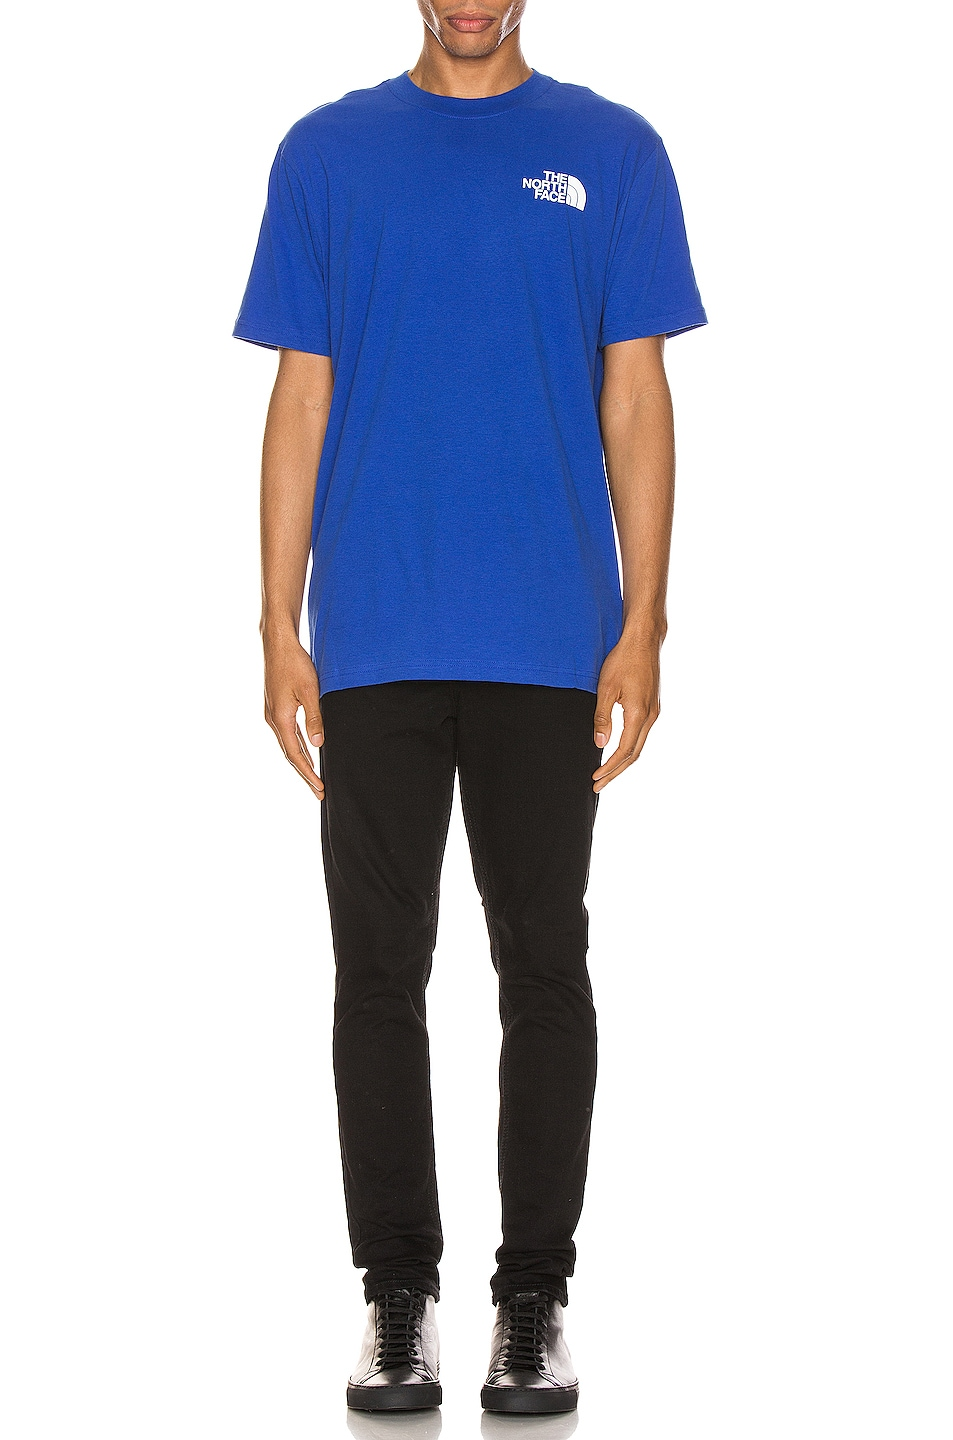 Image 5 of The North Face Red Box Tee in TNF Blue